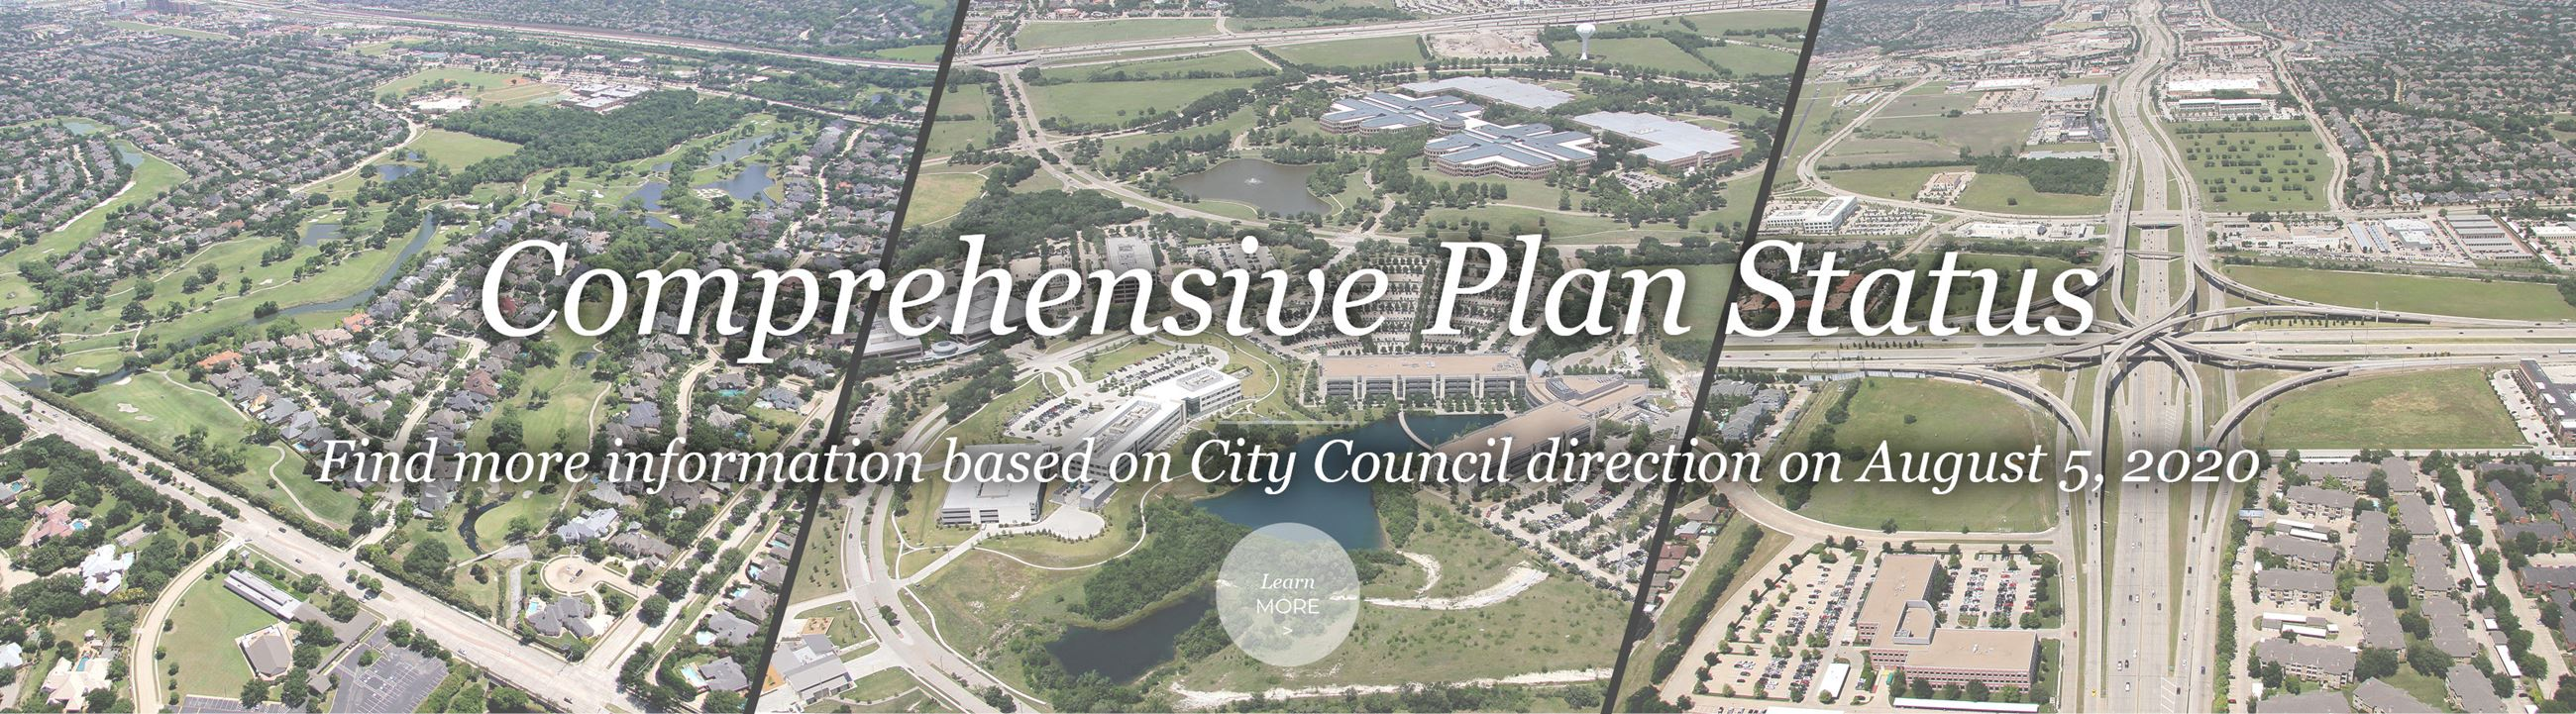 Comprehensive Plan Status